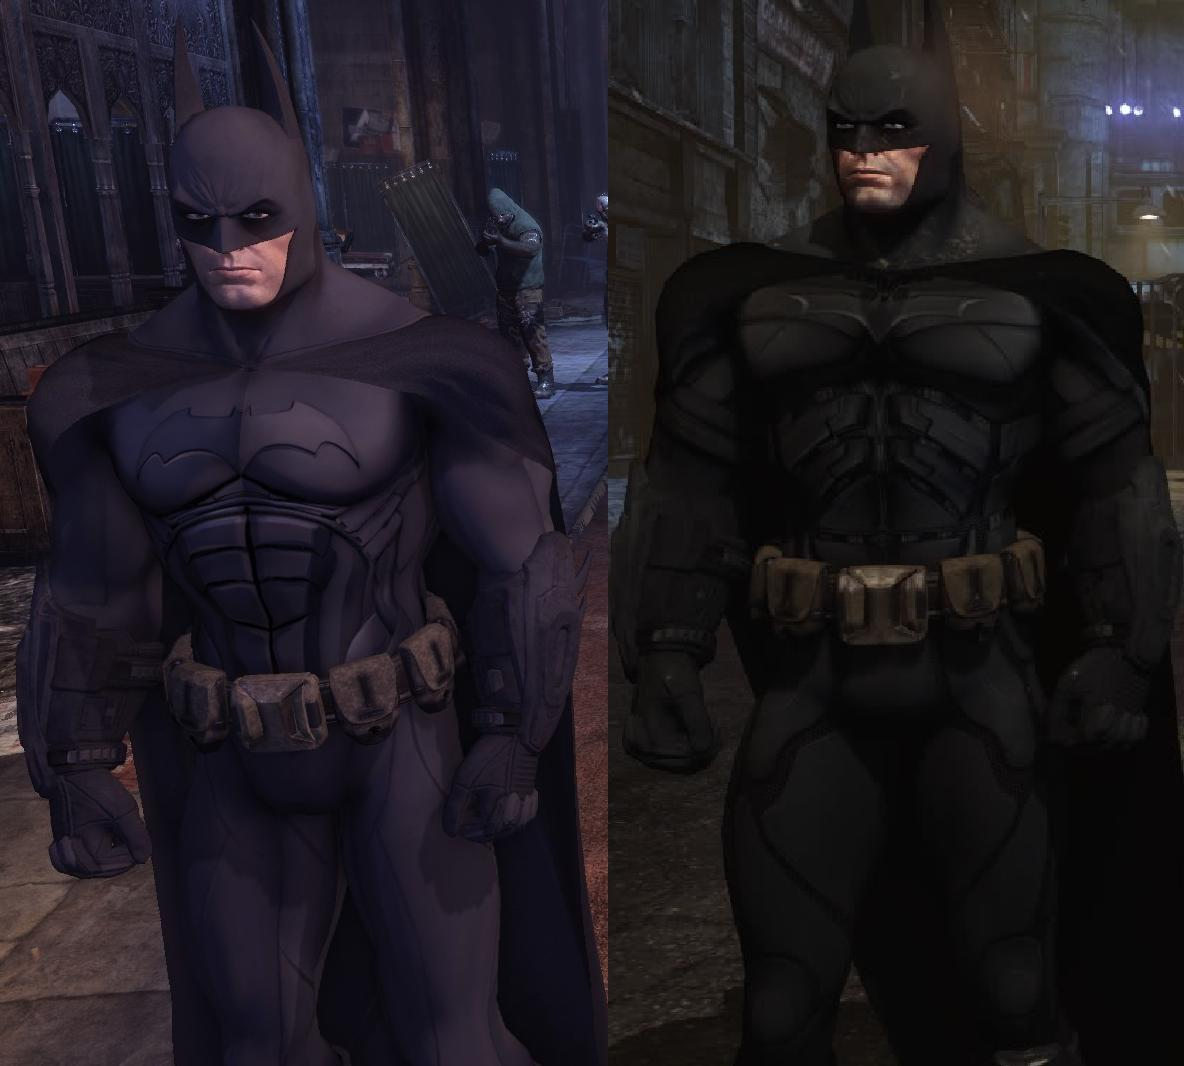 Batman Arkham Knight Batcave: Batman Arkham City The Dark Knight Rises Skin